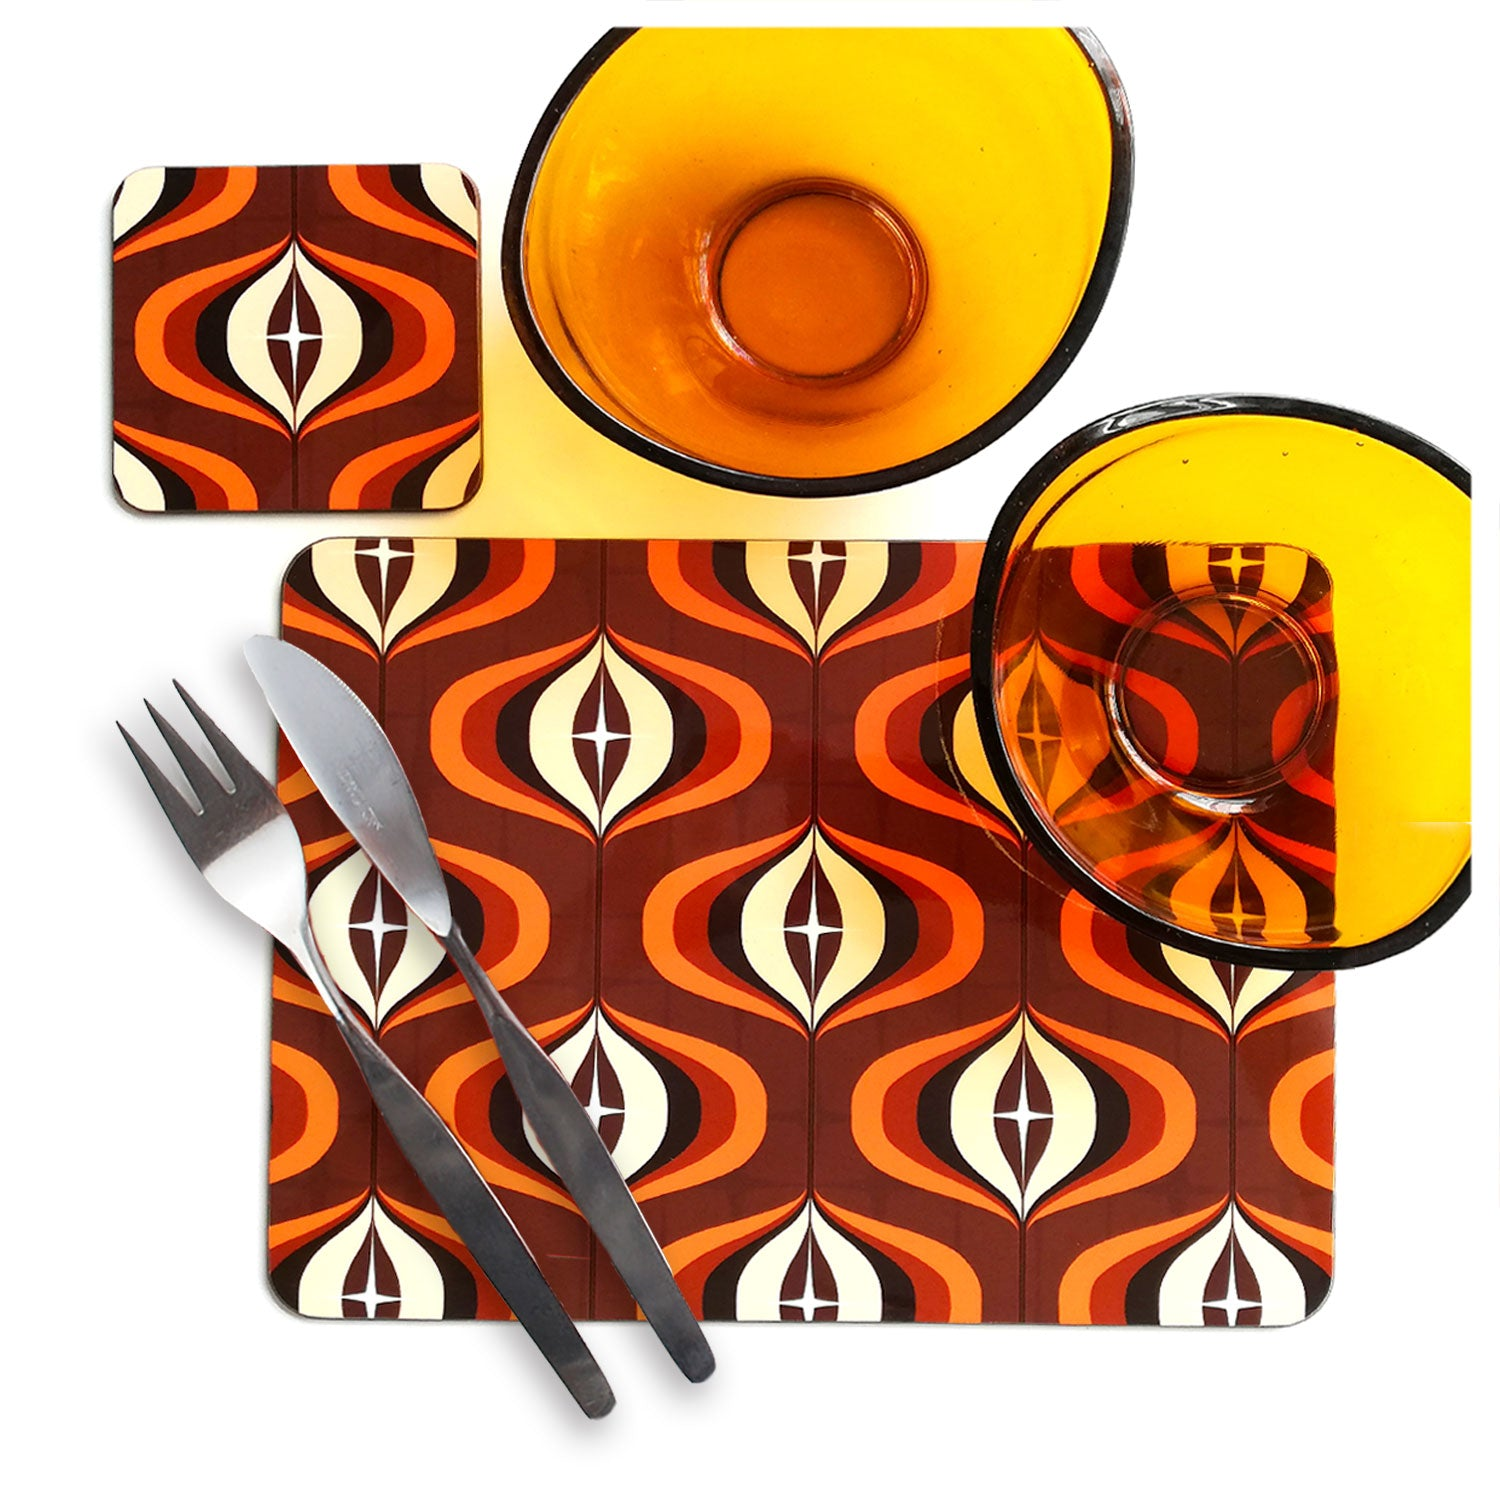 1970s Op Art Placemat & Coaster in Brown and Orange with vintage bowls and cutlery | The Inkabilly Emporium